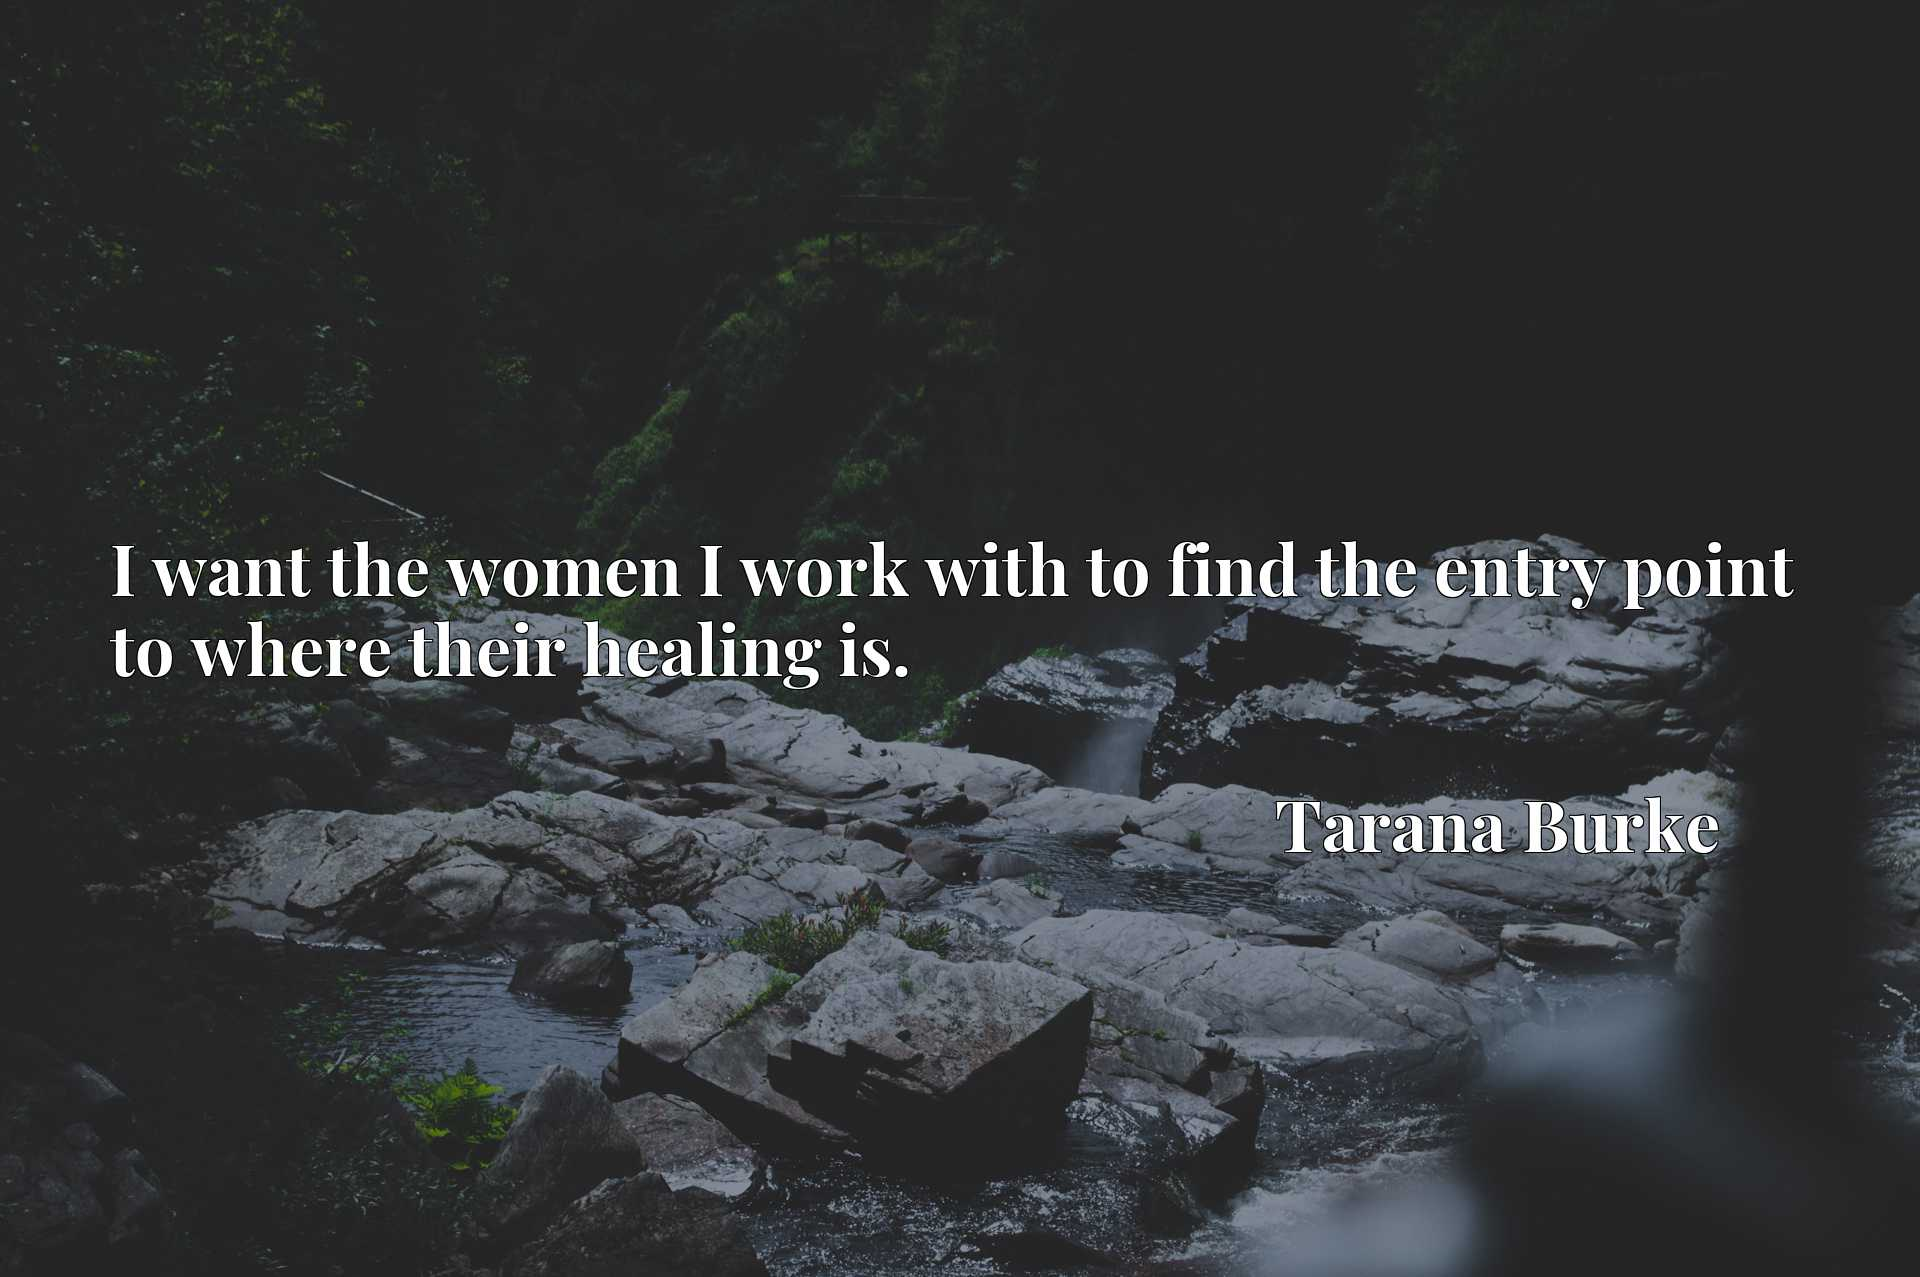 I want the women I work with to find the entry point to where their healing is.